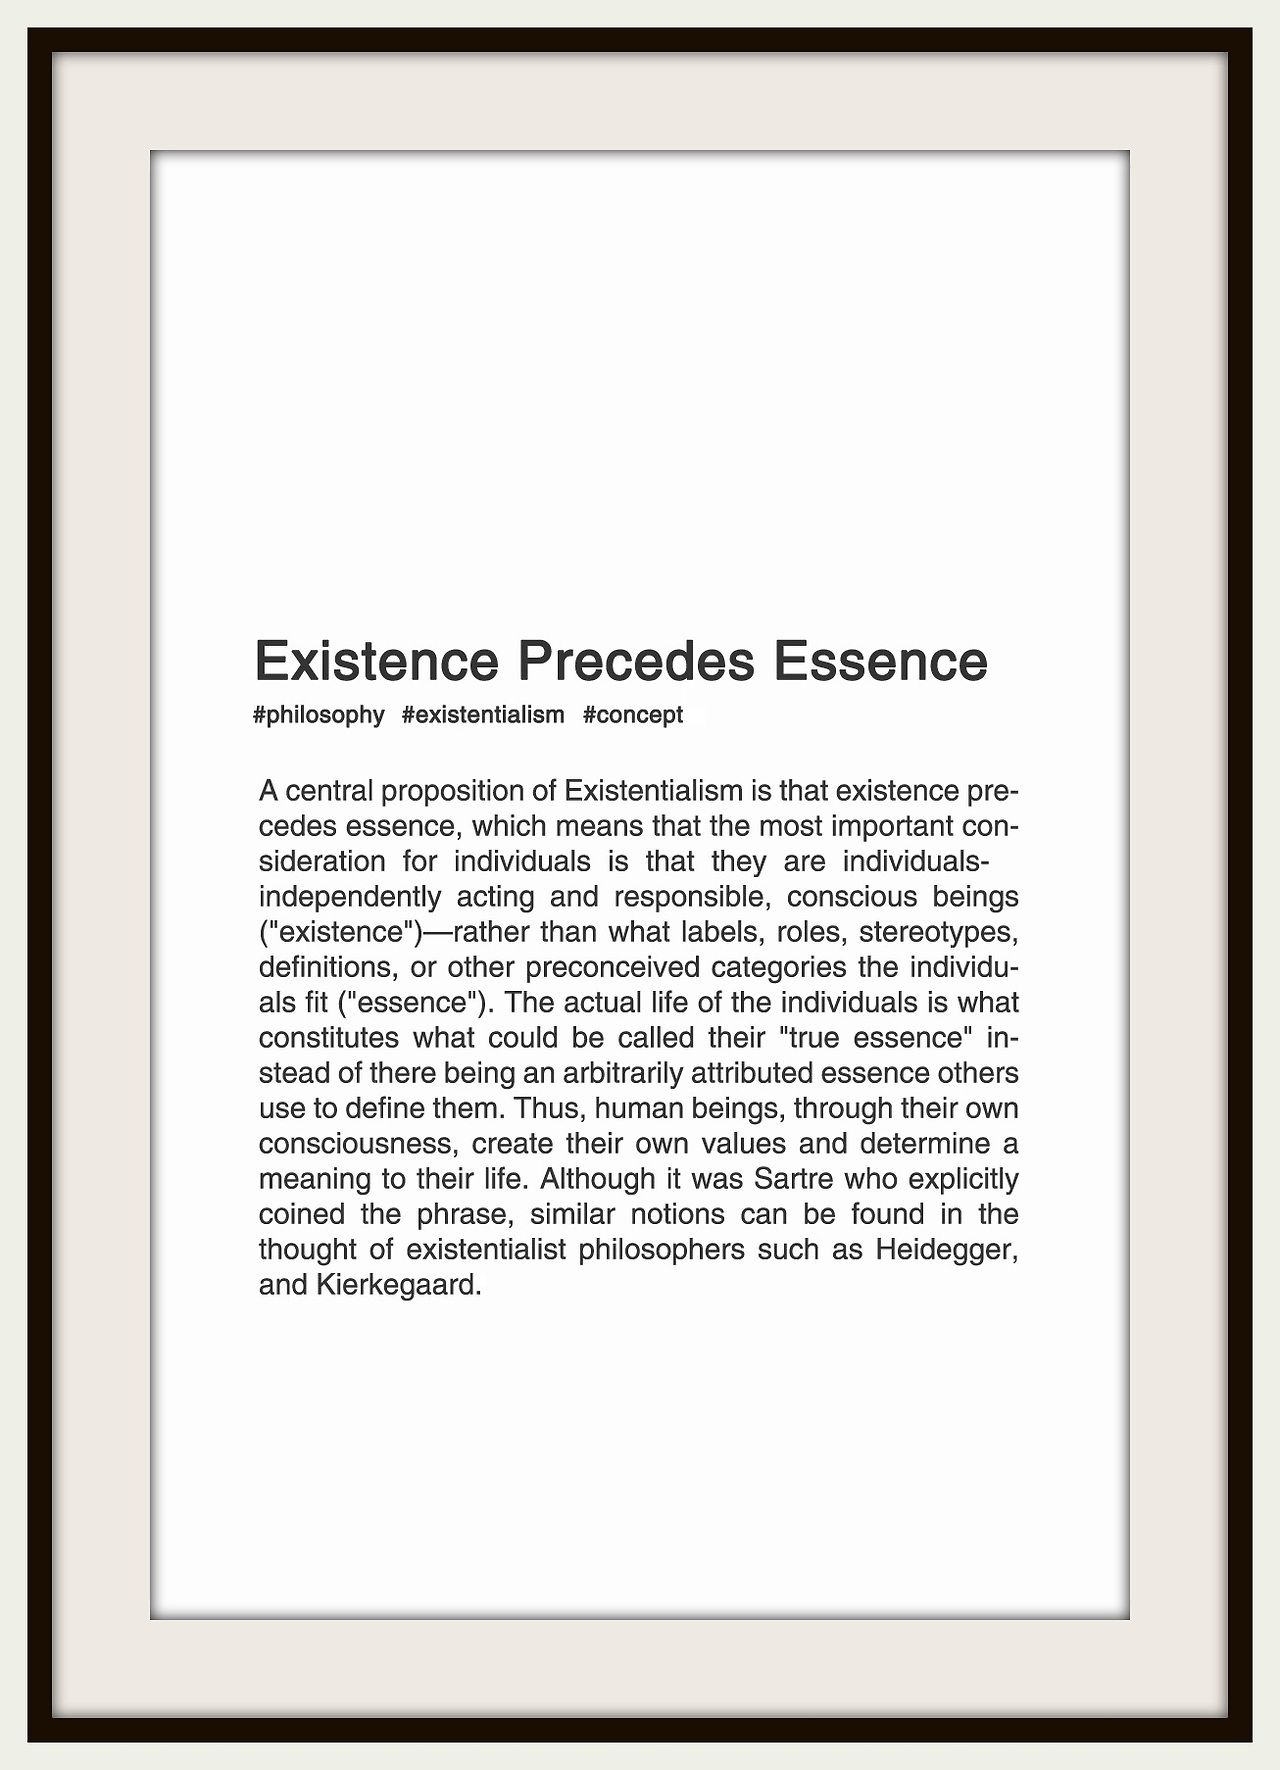 """Essence"" is also related to meaning, but quite accurate anyway"